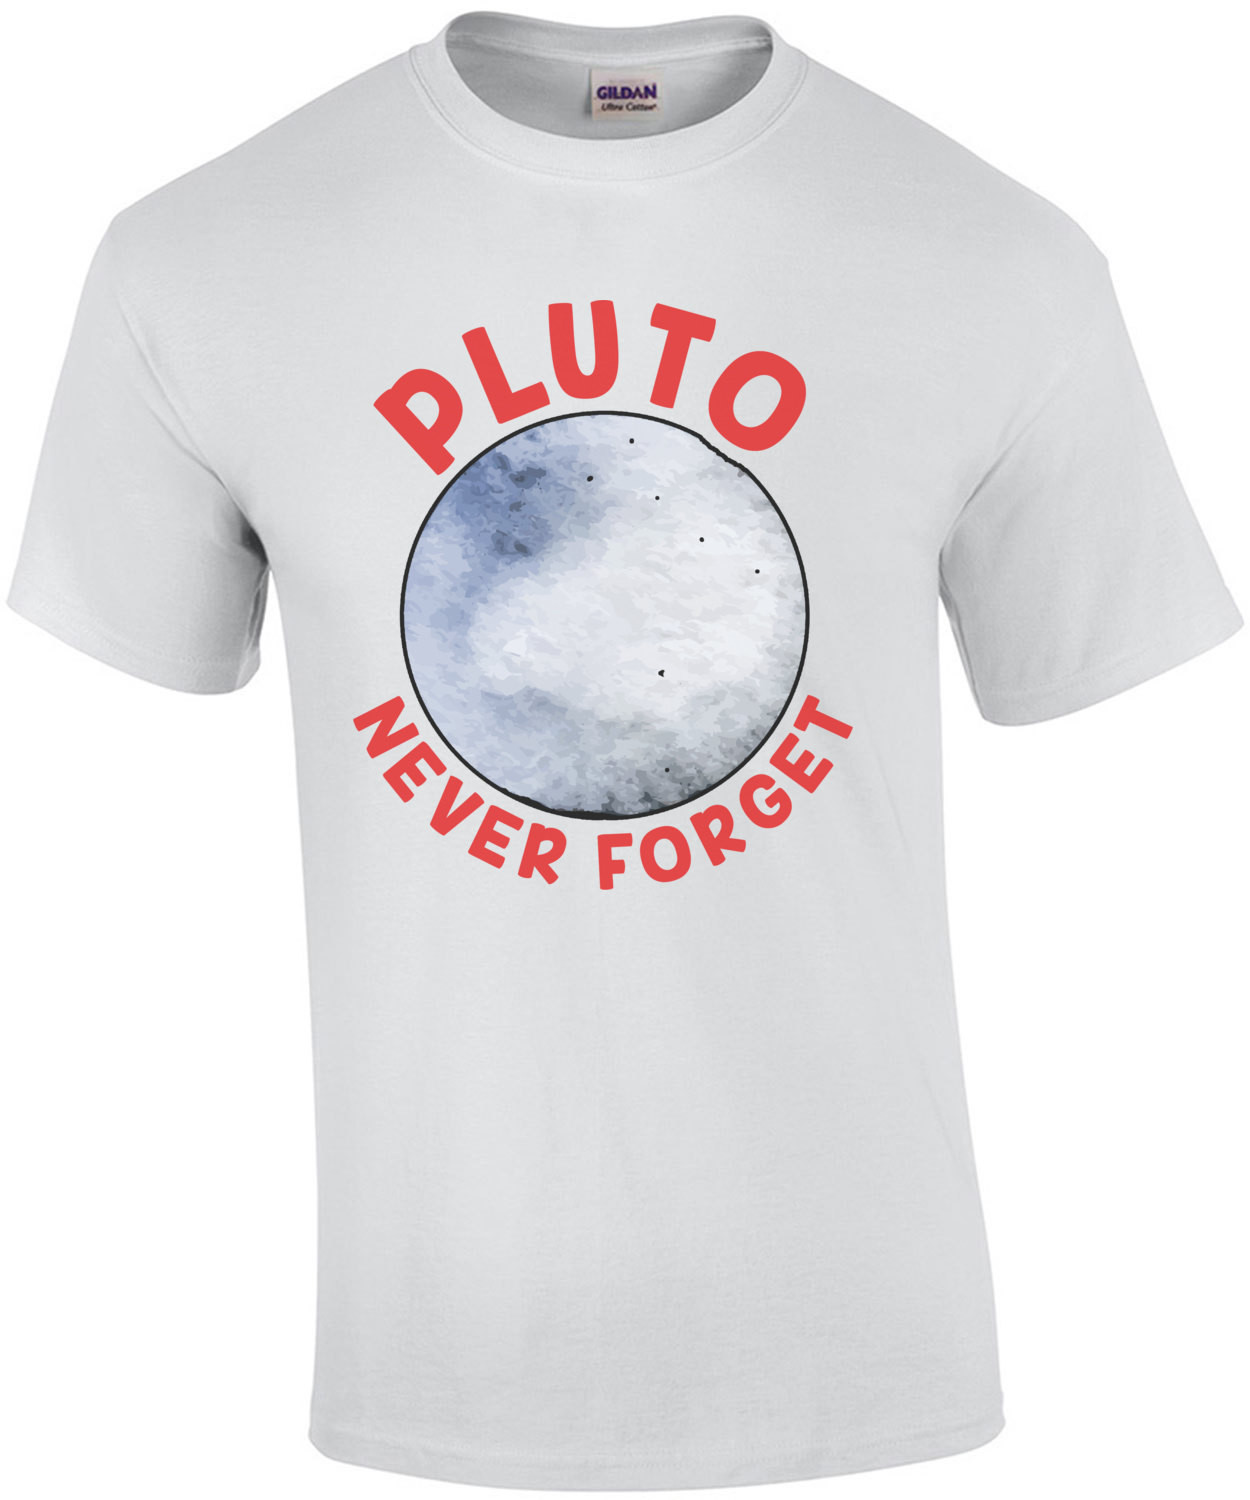 Pluto Never Forget T-Shirt